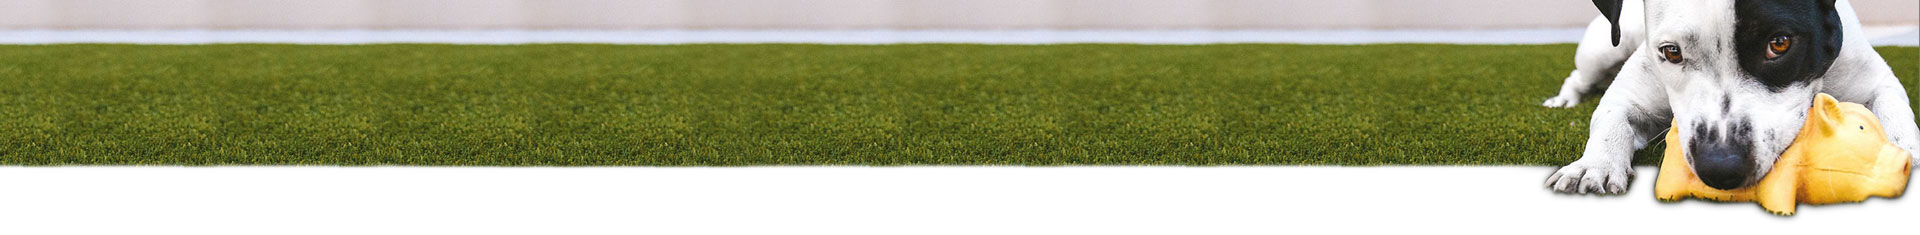 Residential Artificial Grass Products